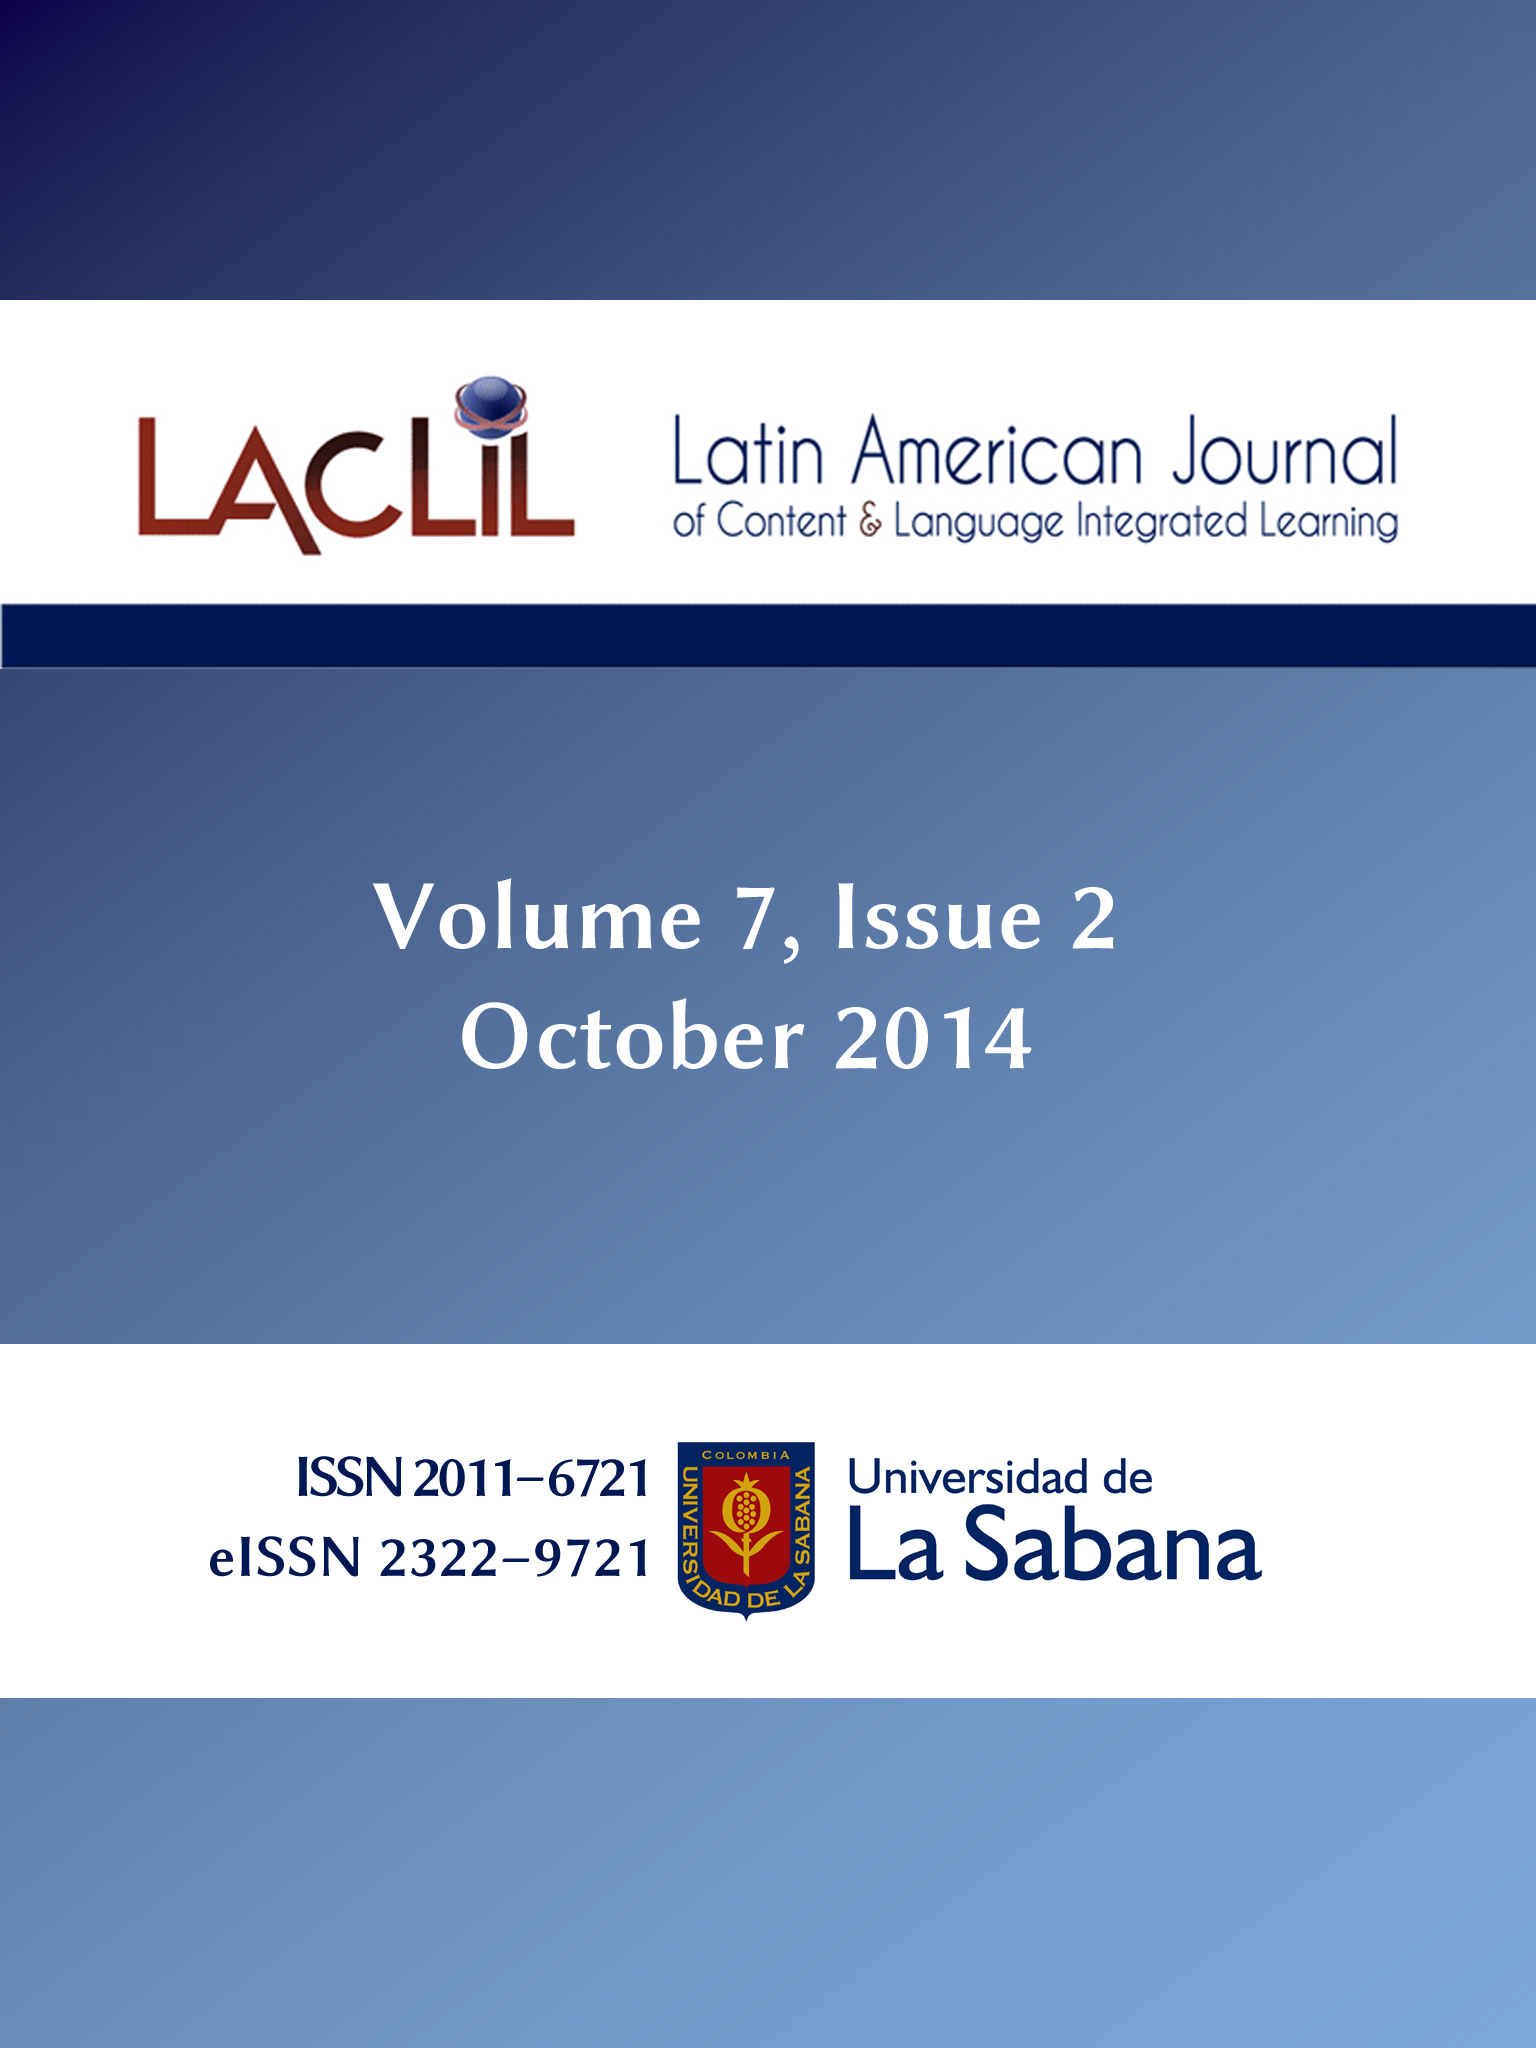 LACLIL Vol. 7, Issue 2 (October 2014)